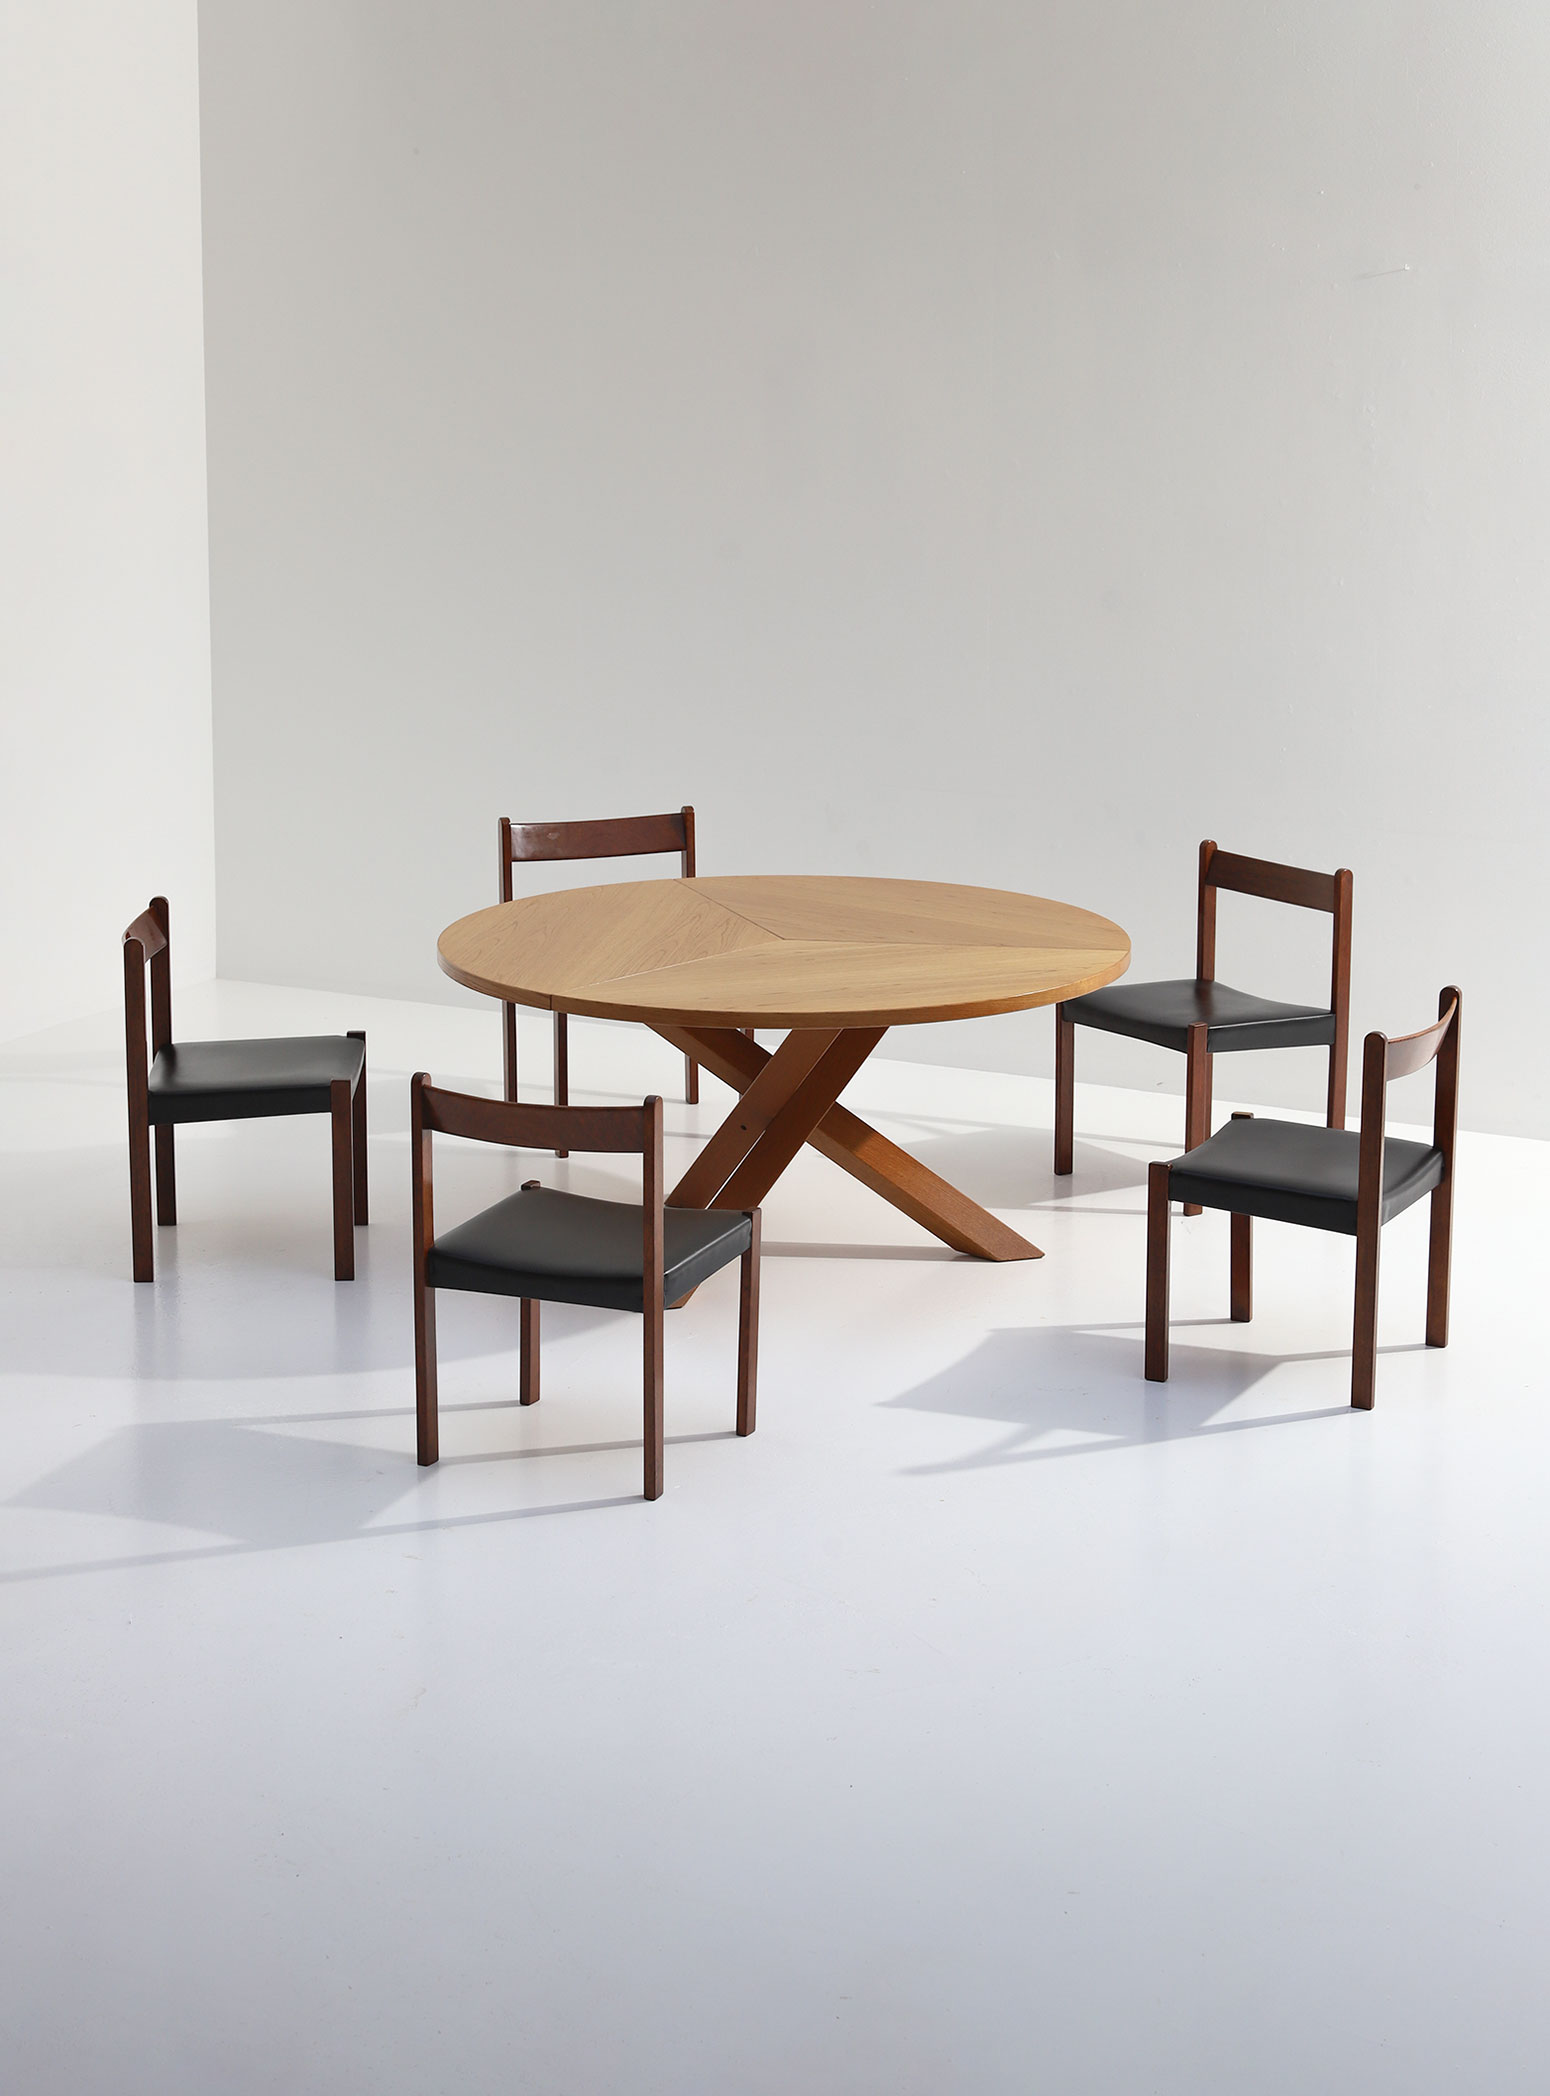 Gerard Geytenbeek Dining Table for AZS The Netherlands